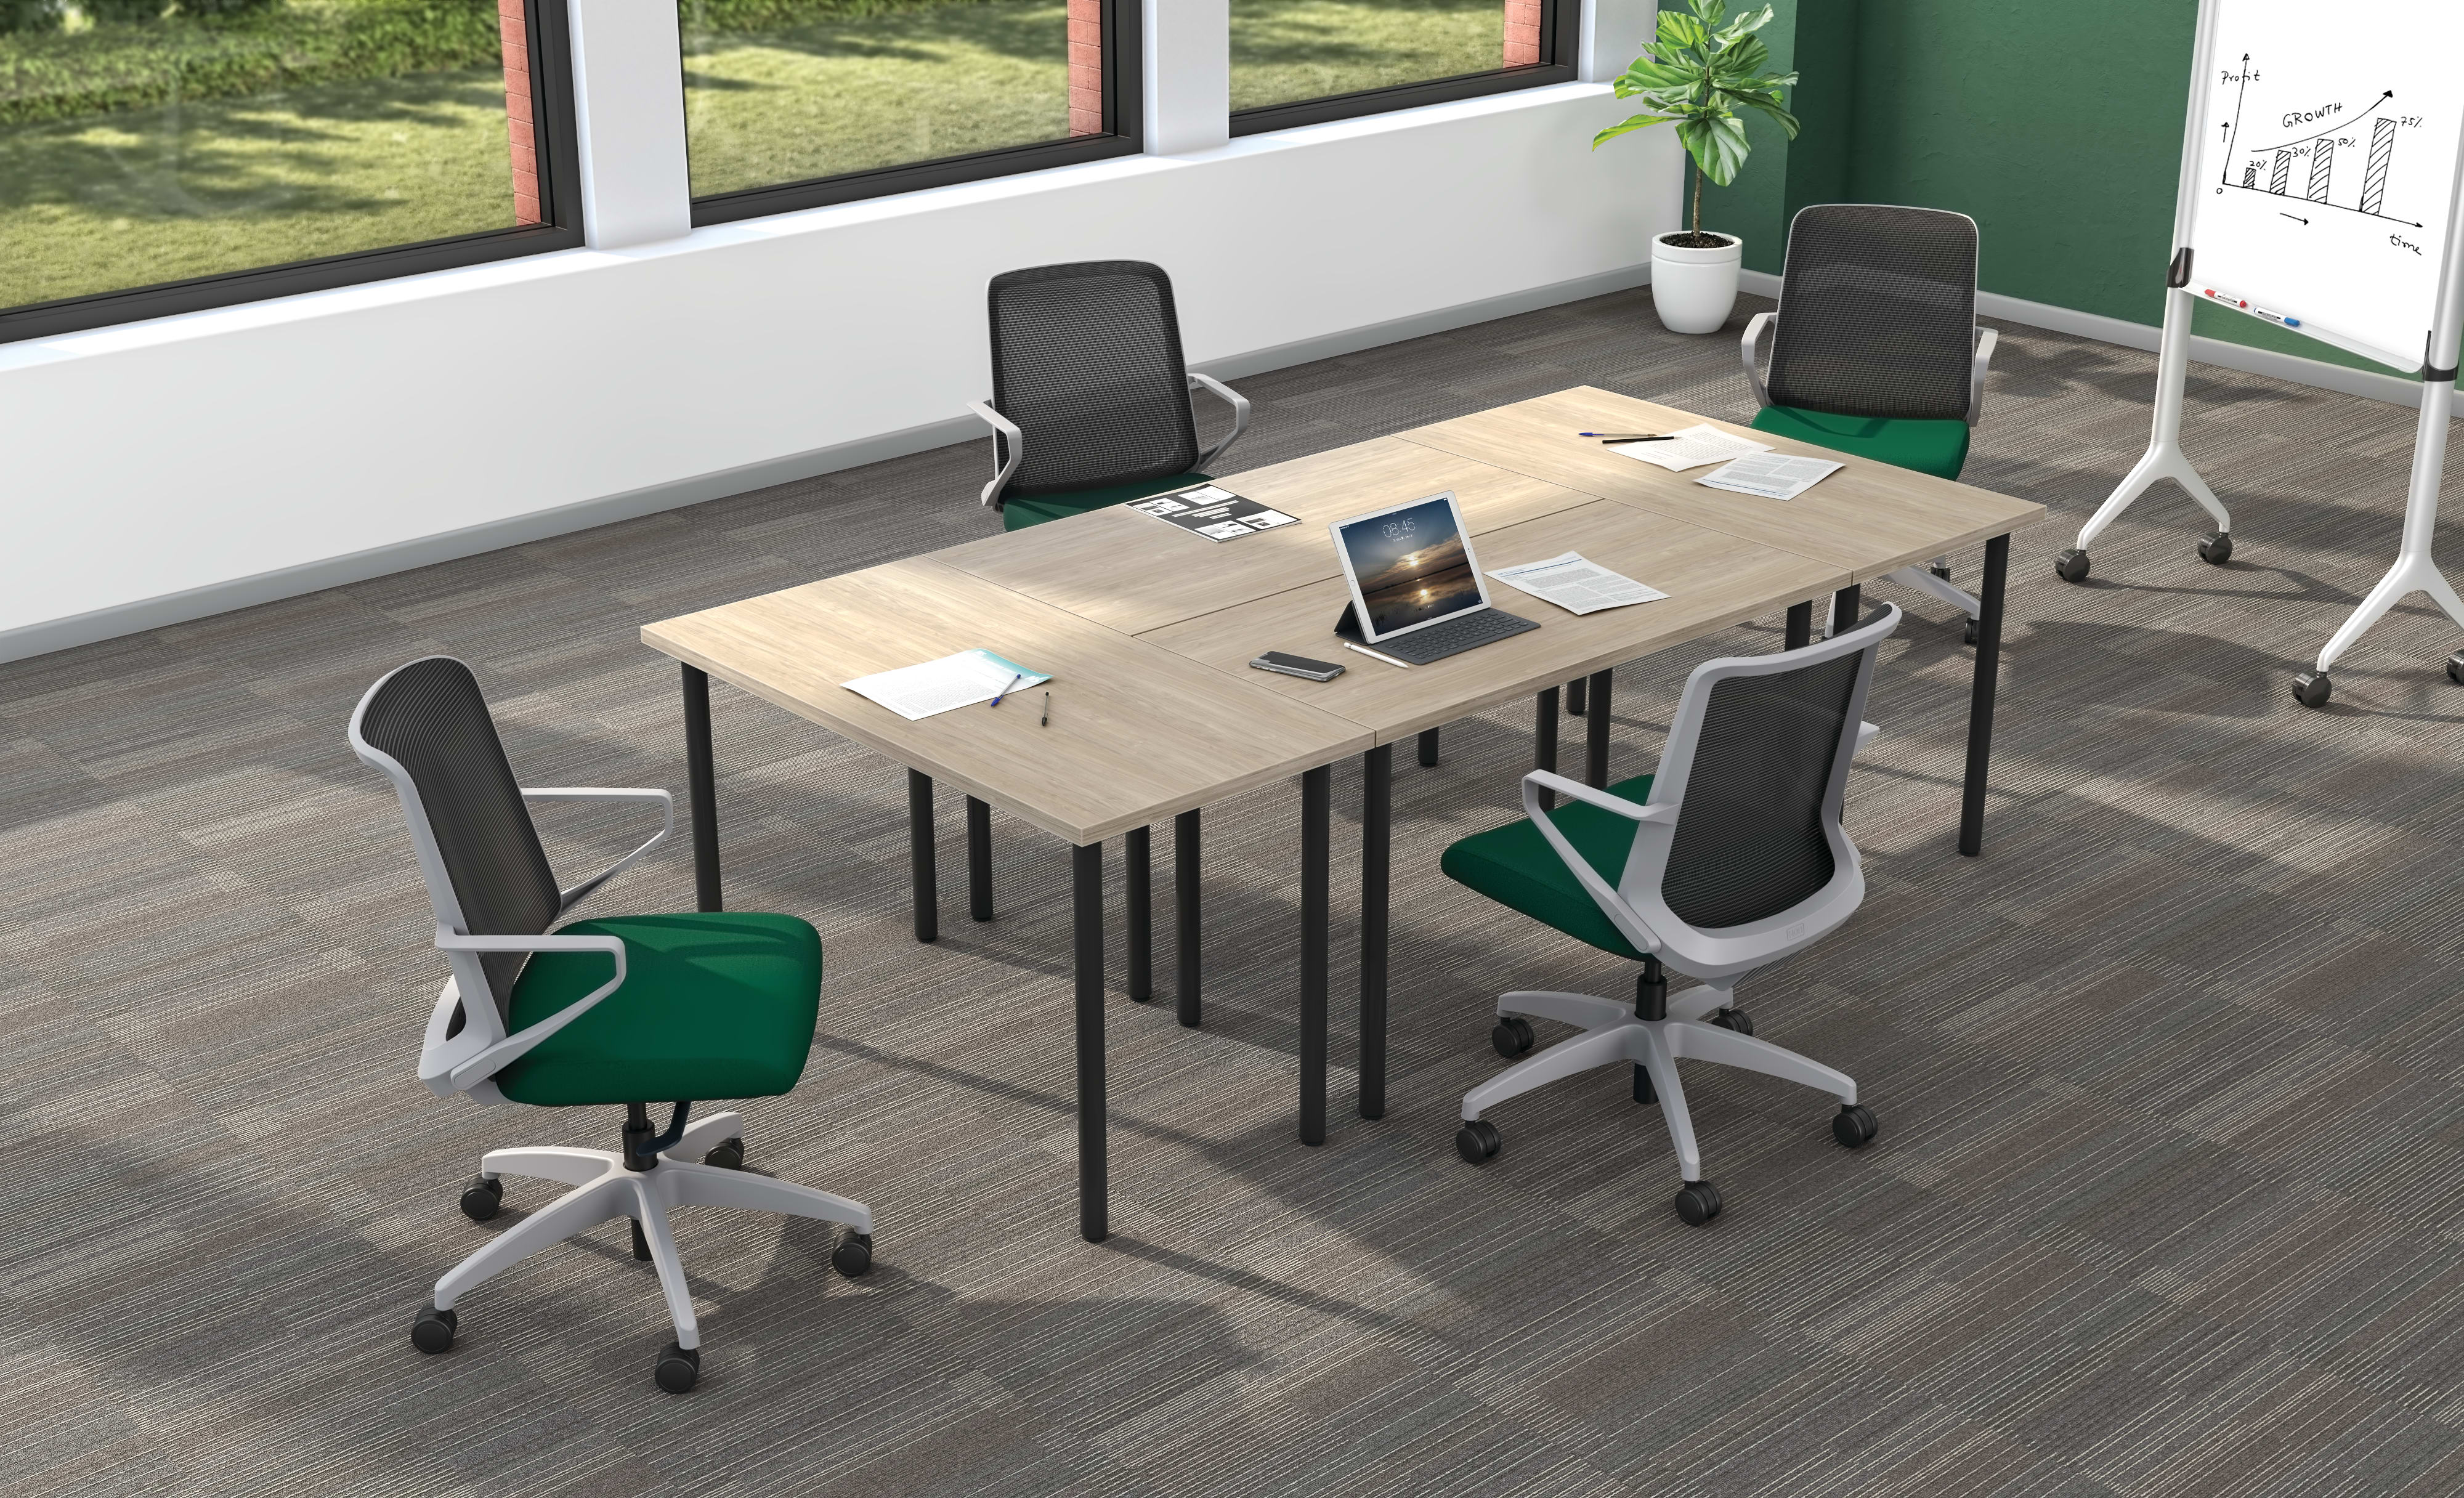 Huddle rectangle tables shown in Kingswood Walnut tops and Black legs with Cliq task seating.